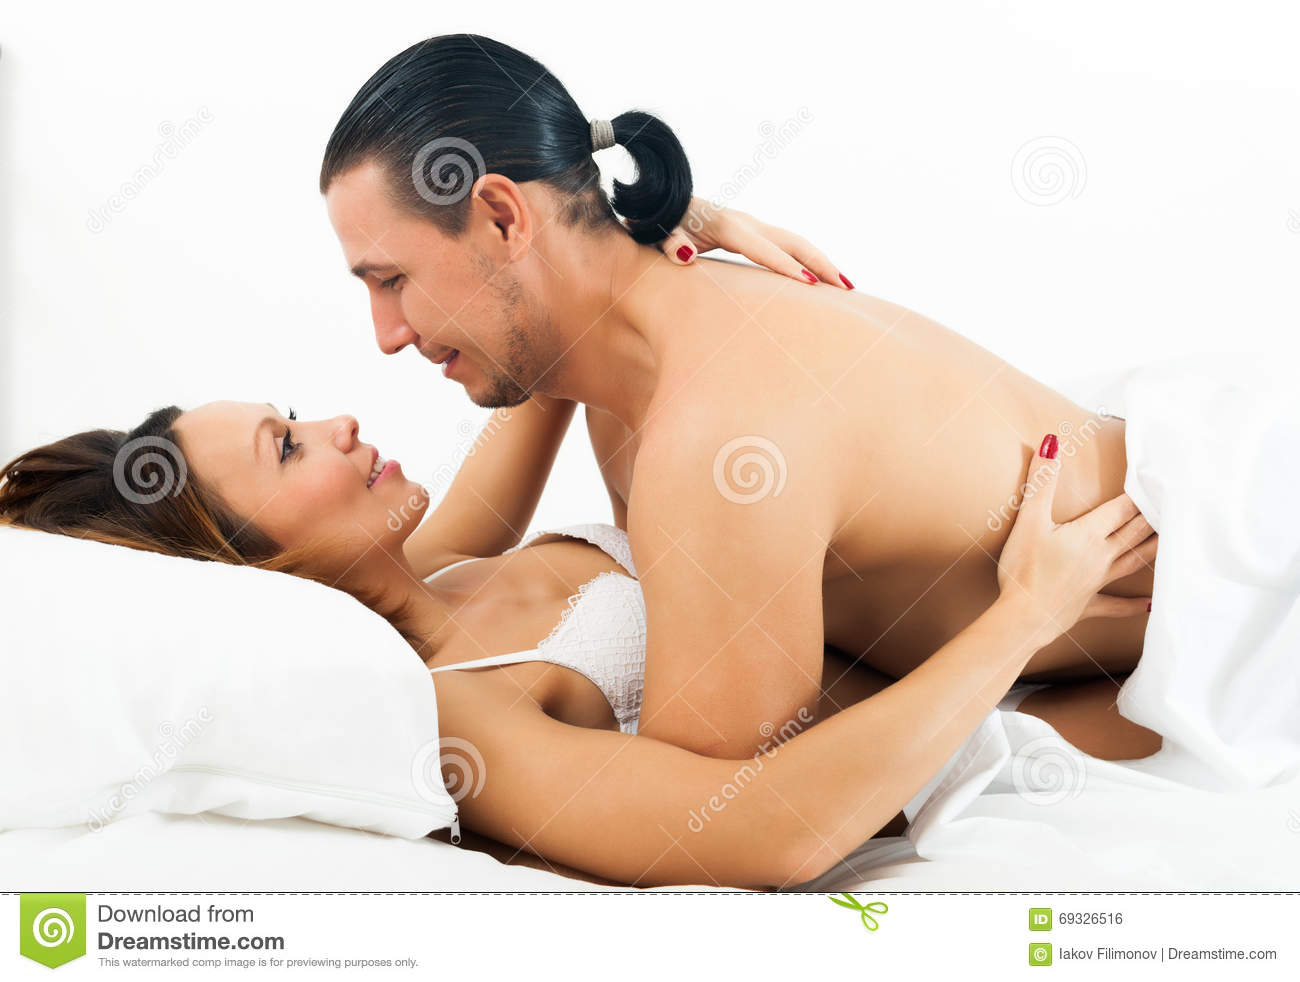 Pictures of men and woman having sex